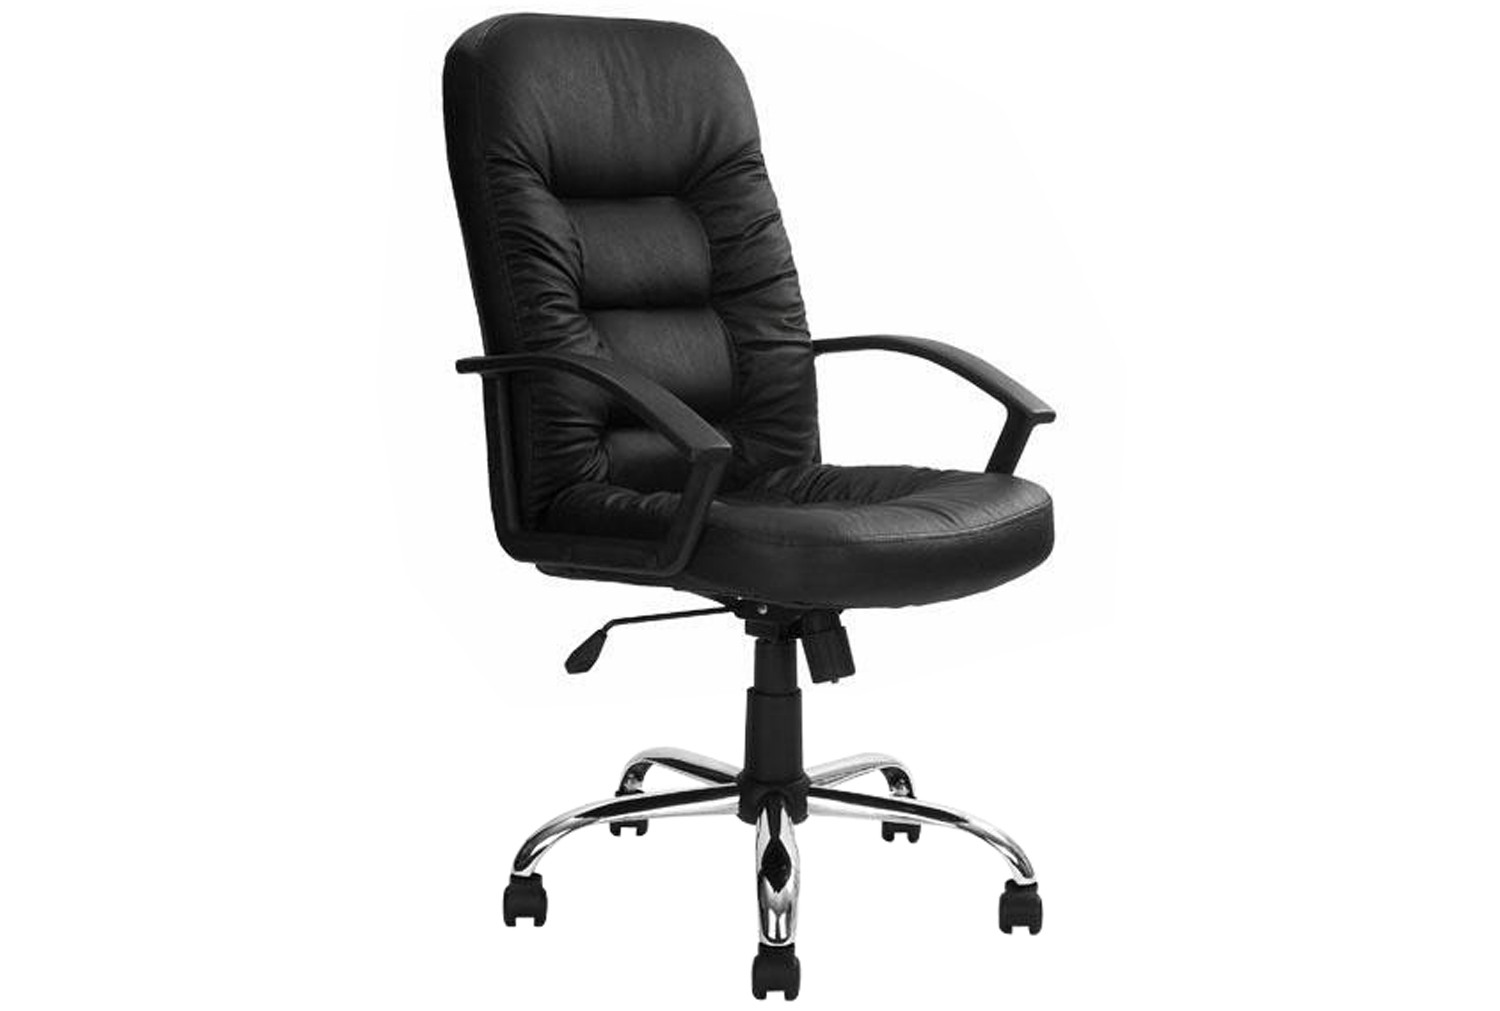 Bartlett executive leather faced chair